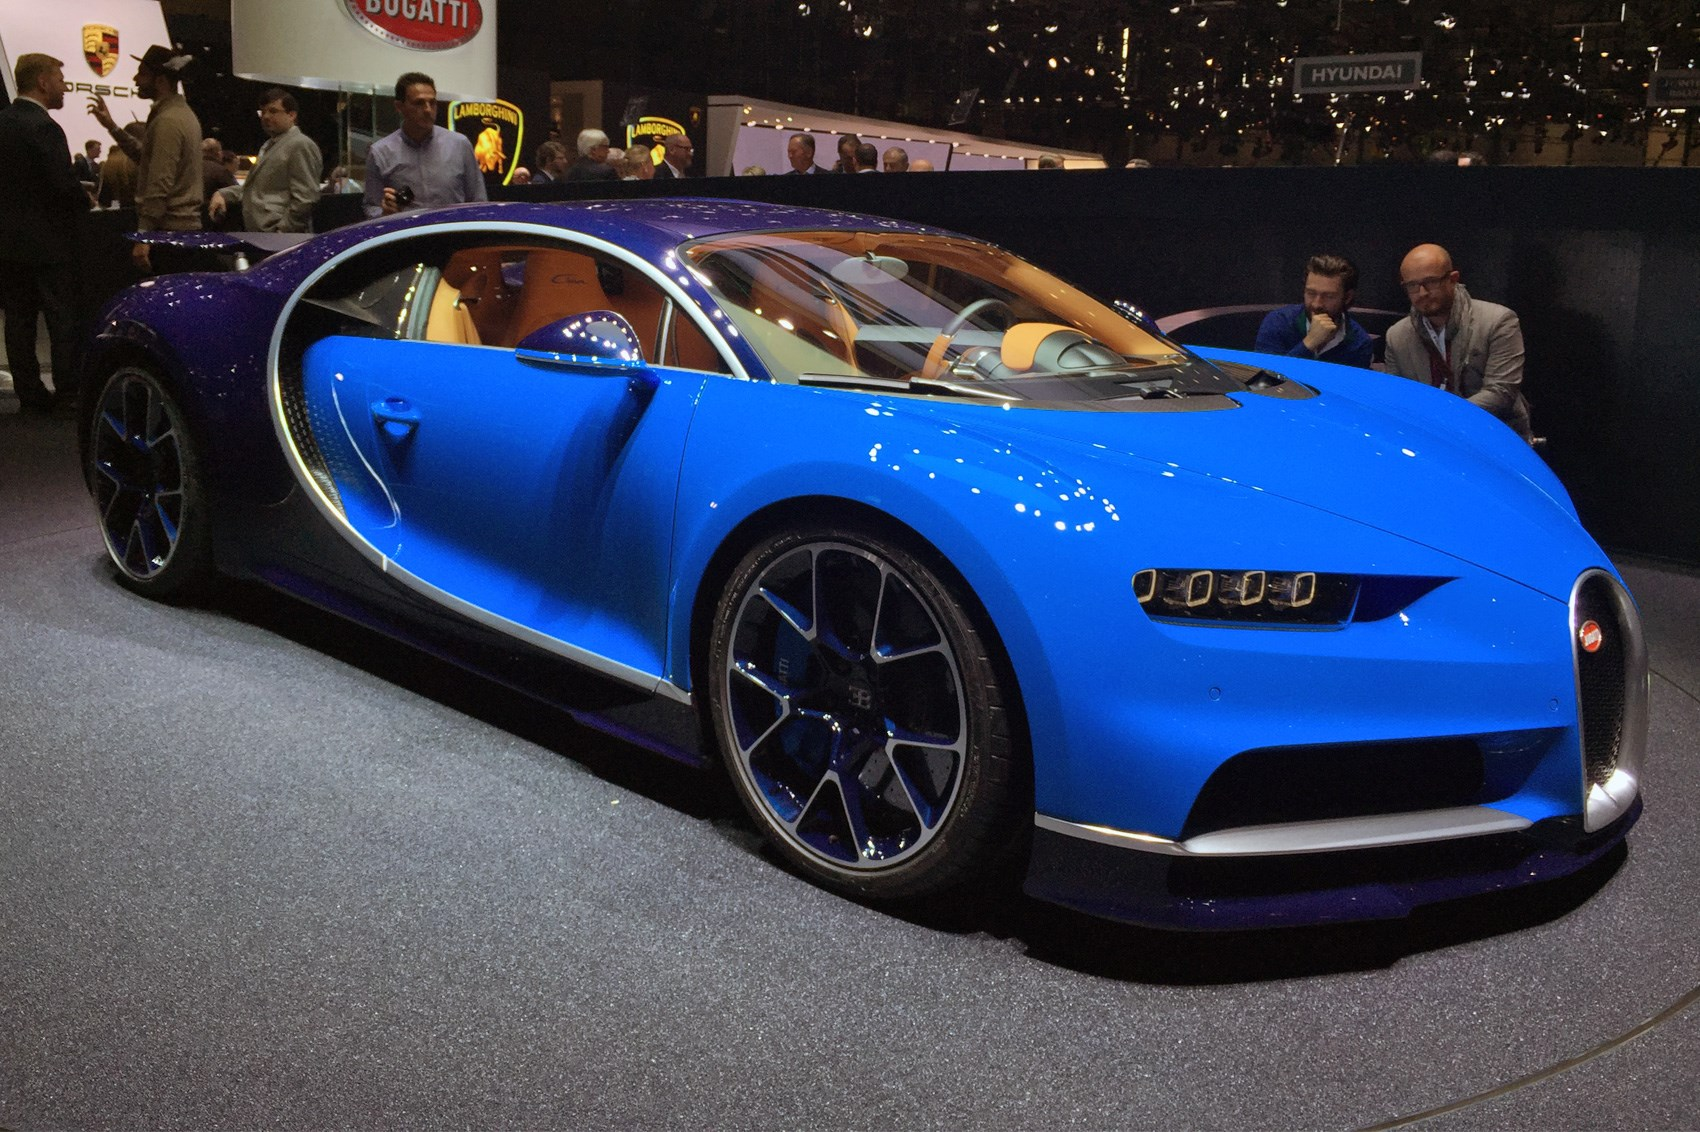 Ultrablogus  Wonderful Bugatti Is Go New Chiron Name Confirmed Here At Geneva  By  With Fair Bugatti Chiron Revealed At Geneva  The World Has A New Fastest Production Car With Adorable How To Paint Plastic Interior Car Trim Also Jdm Eg Interior In Addition How To Remove Mold From Car Interior And B  Mitchell Interior As Well As T Camper Interior Kits Additionally E Interior Trim From Carmagazinecouk With Ultrablogus  Fair Bugatti Is Go New Chiron Name Confirmed Here At Geneva  By  With Adorable Bugatti Chiron Revealed At Geneva  The World Has A New Fastest Production Car And Wonderful How To Paint Plastic Interior Car Trim Also Jdm Eg Interior In Addition How To Remove Mold From Car Interior From Carmagazinecouk